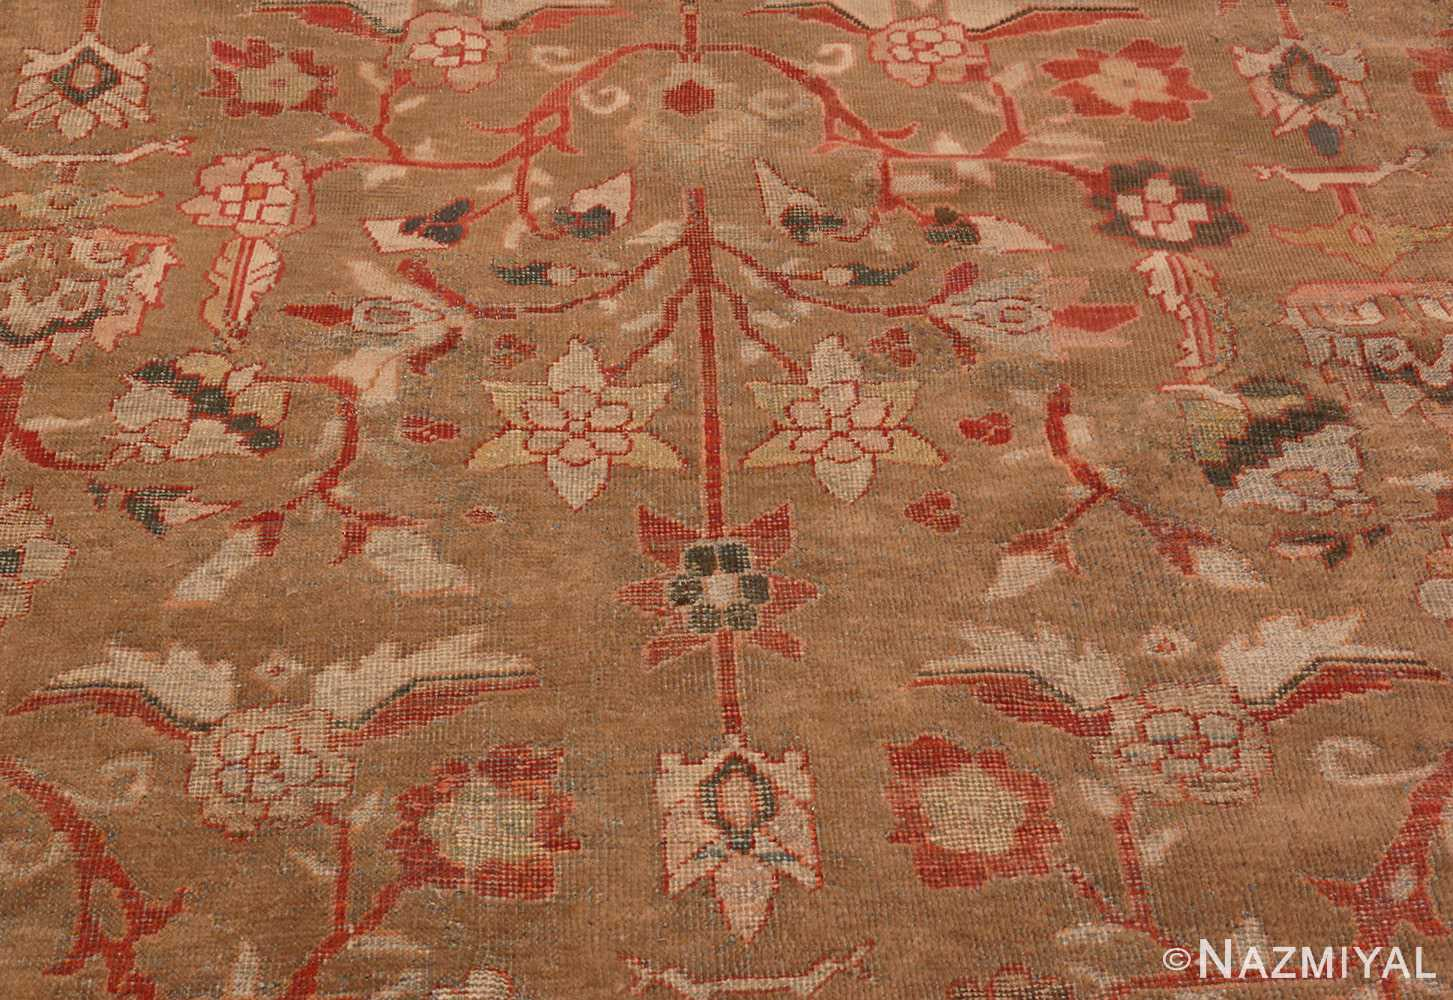 Detail Picture of Antique Persian Sultanabad Rug #48944 from Nazmiyal Antique Rugs in NYC